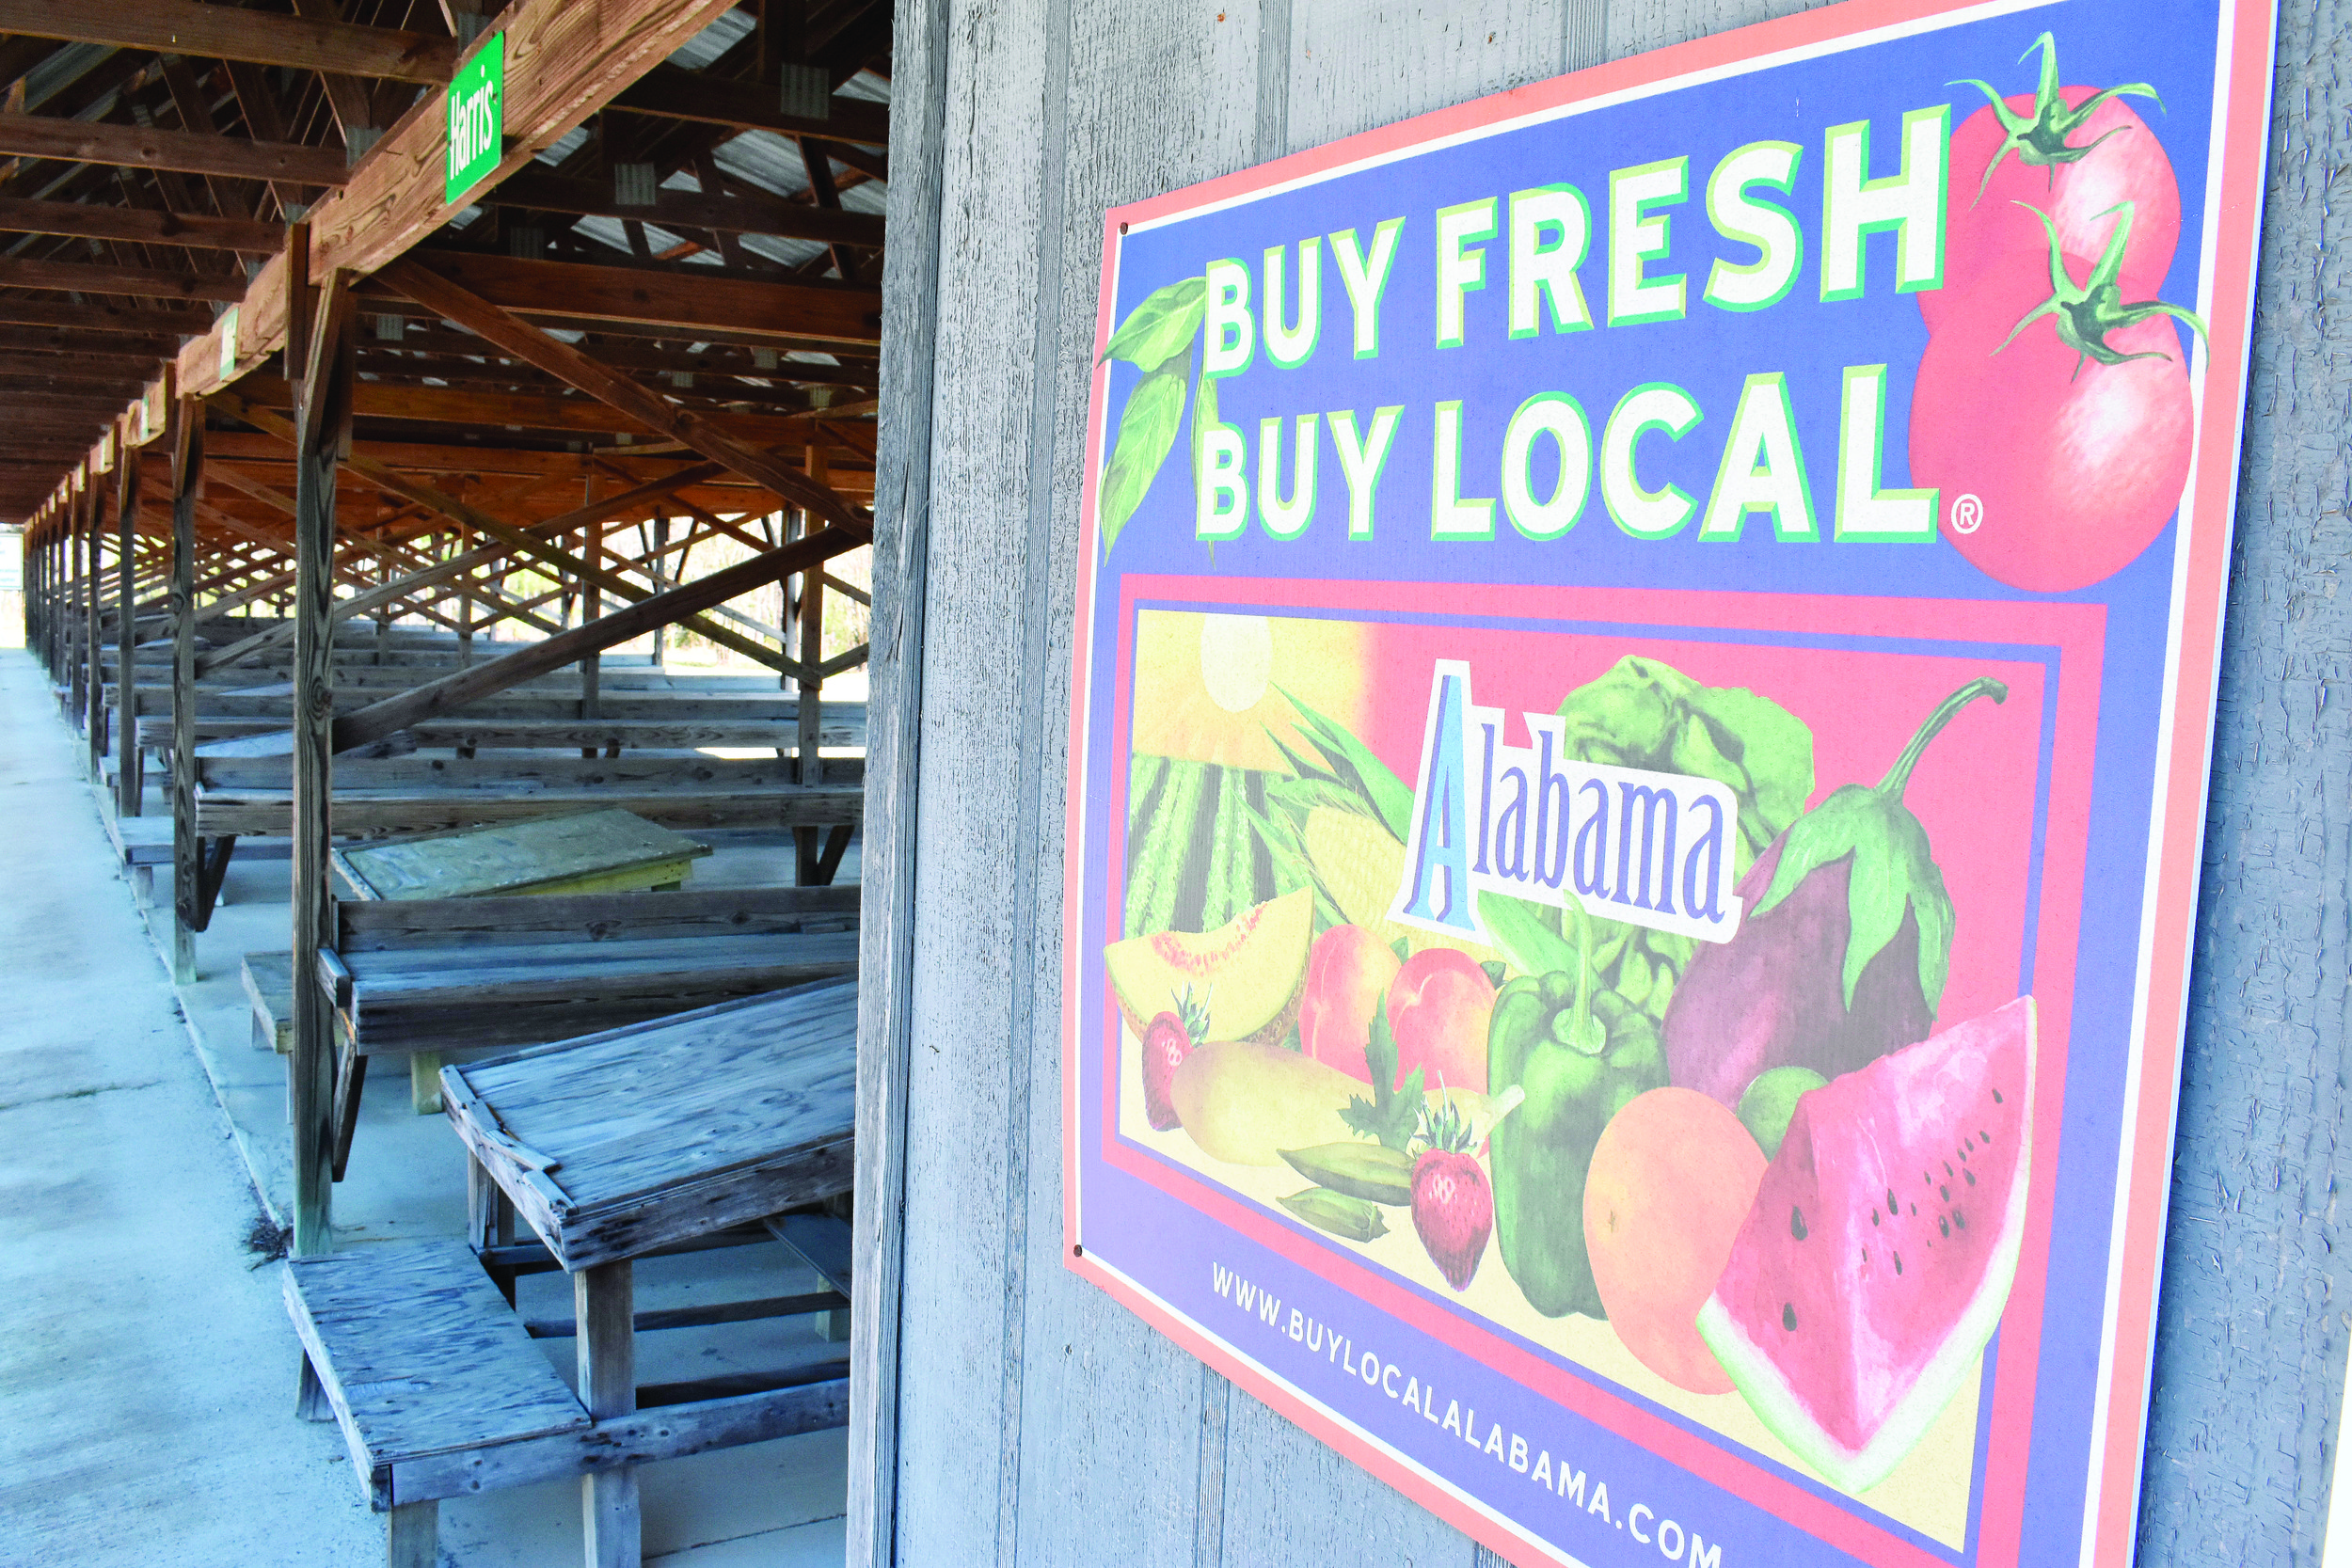 Farmer's market may not be certified | Daily Mountain Eagle